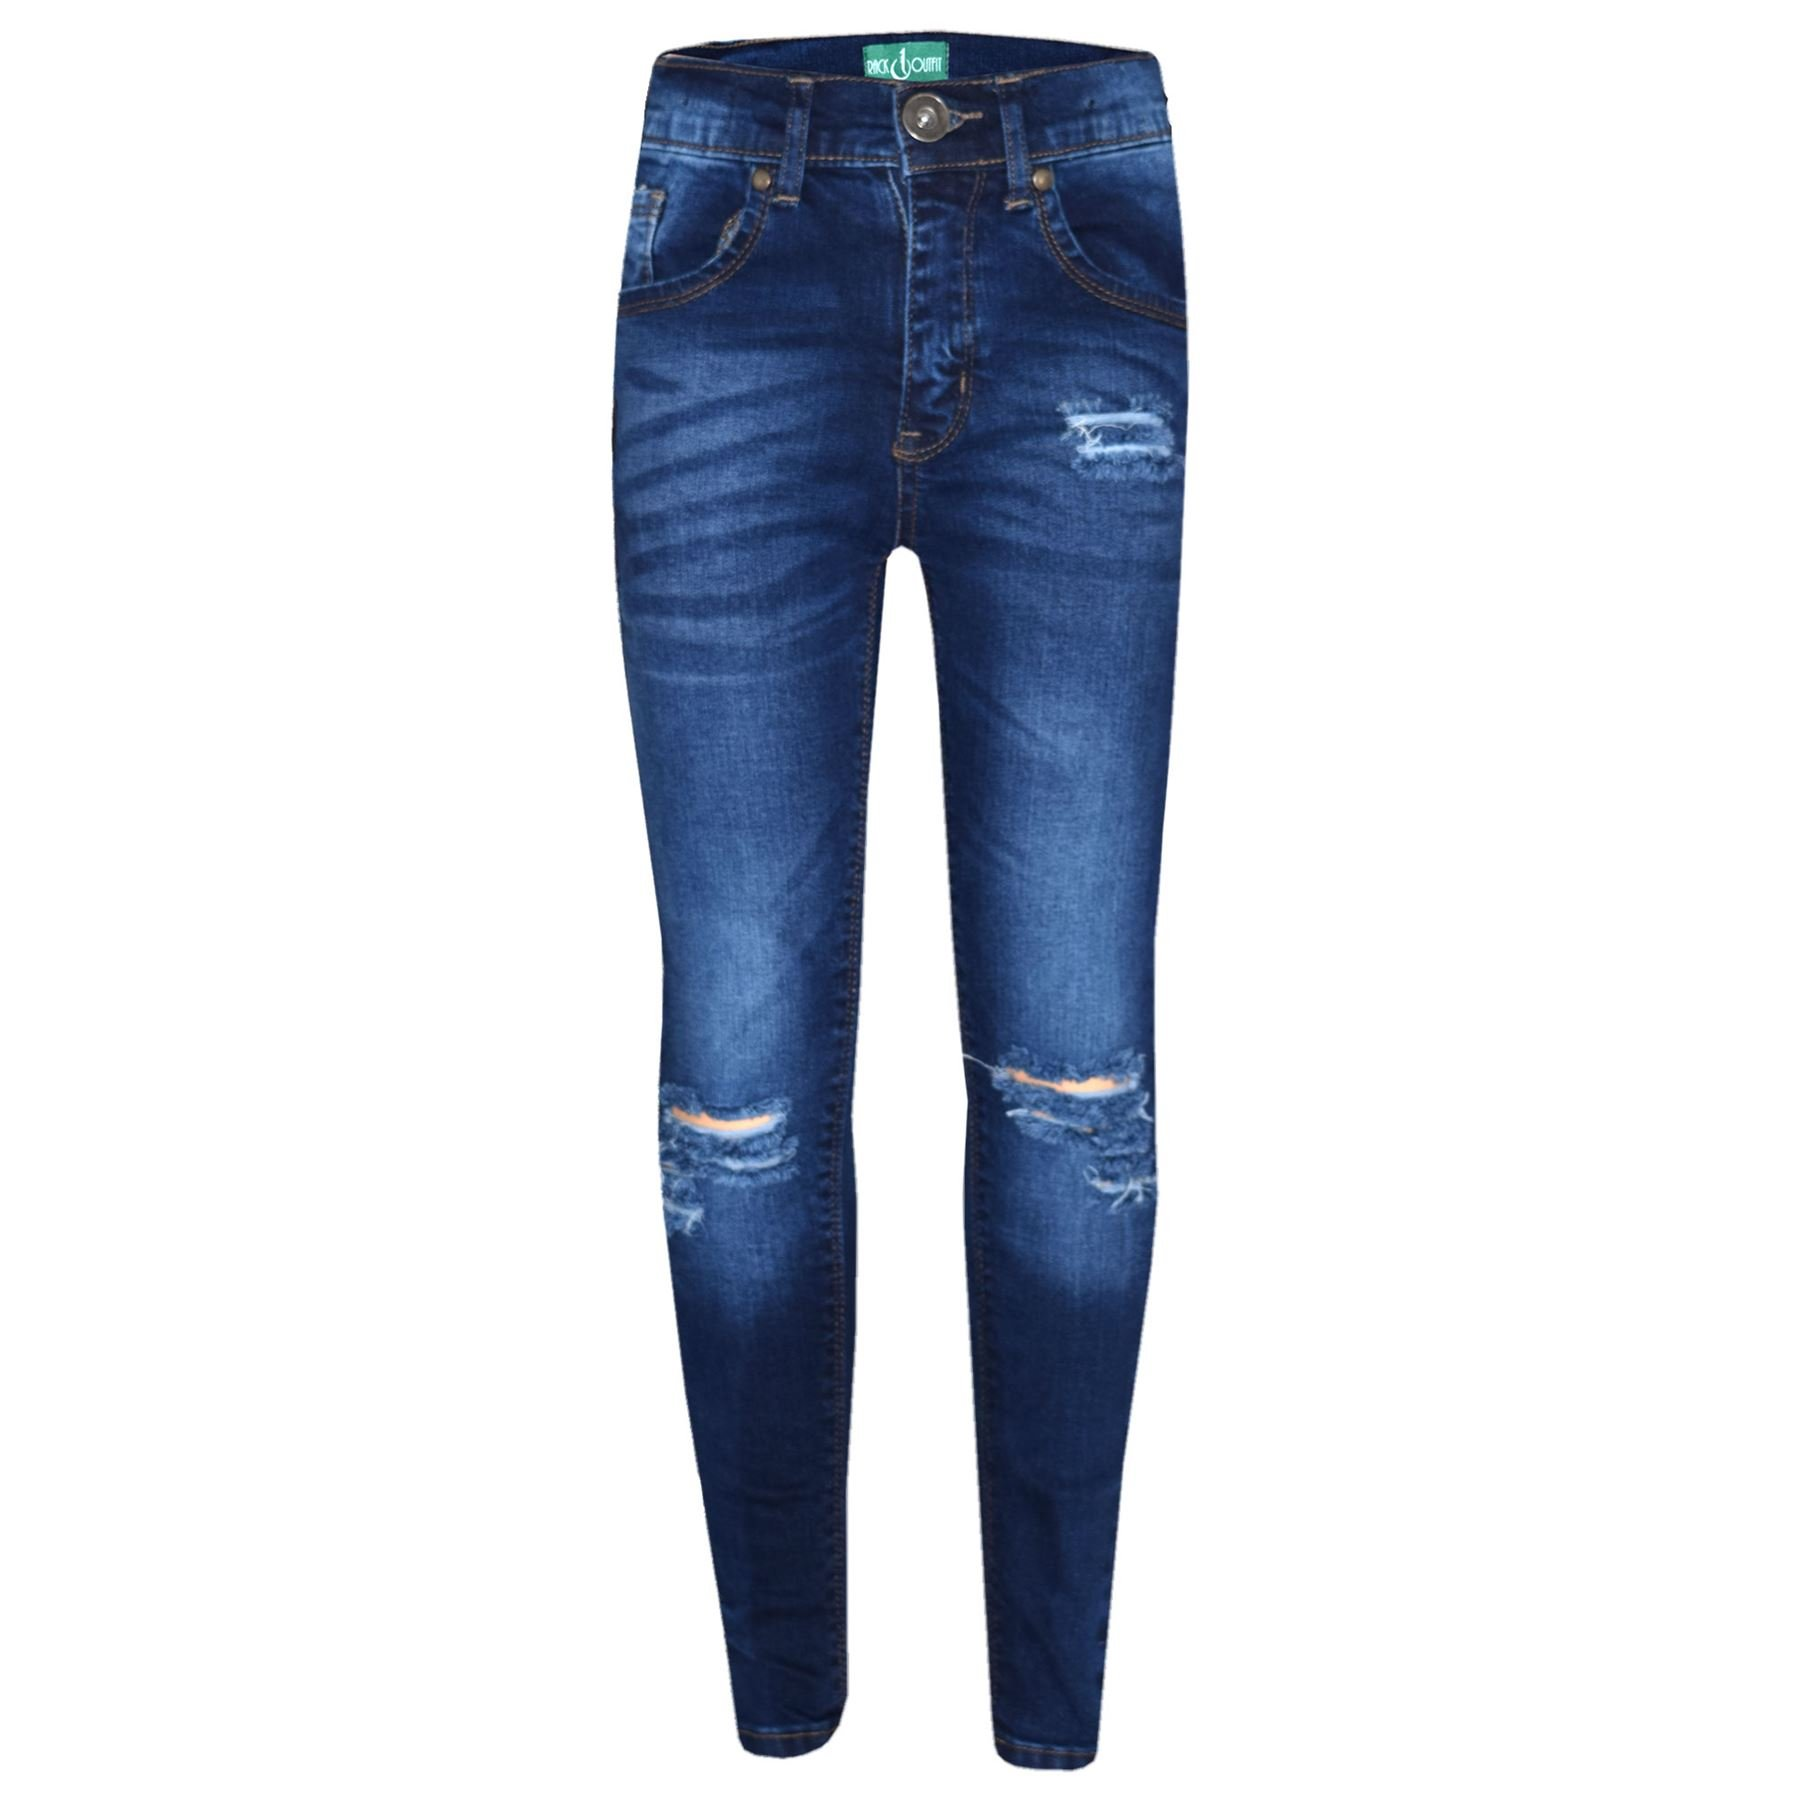 A2Z 4 Kids® Girls Stretchy Jeans Kids Blue Denim Ripped Pants Frayed Trousers Age 5-13 Year